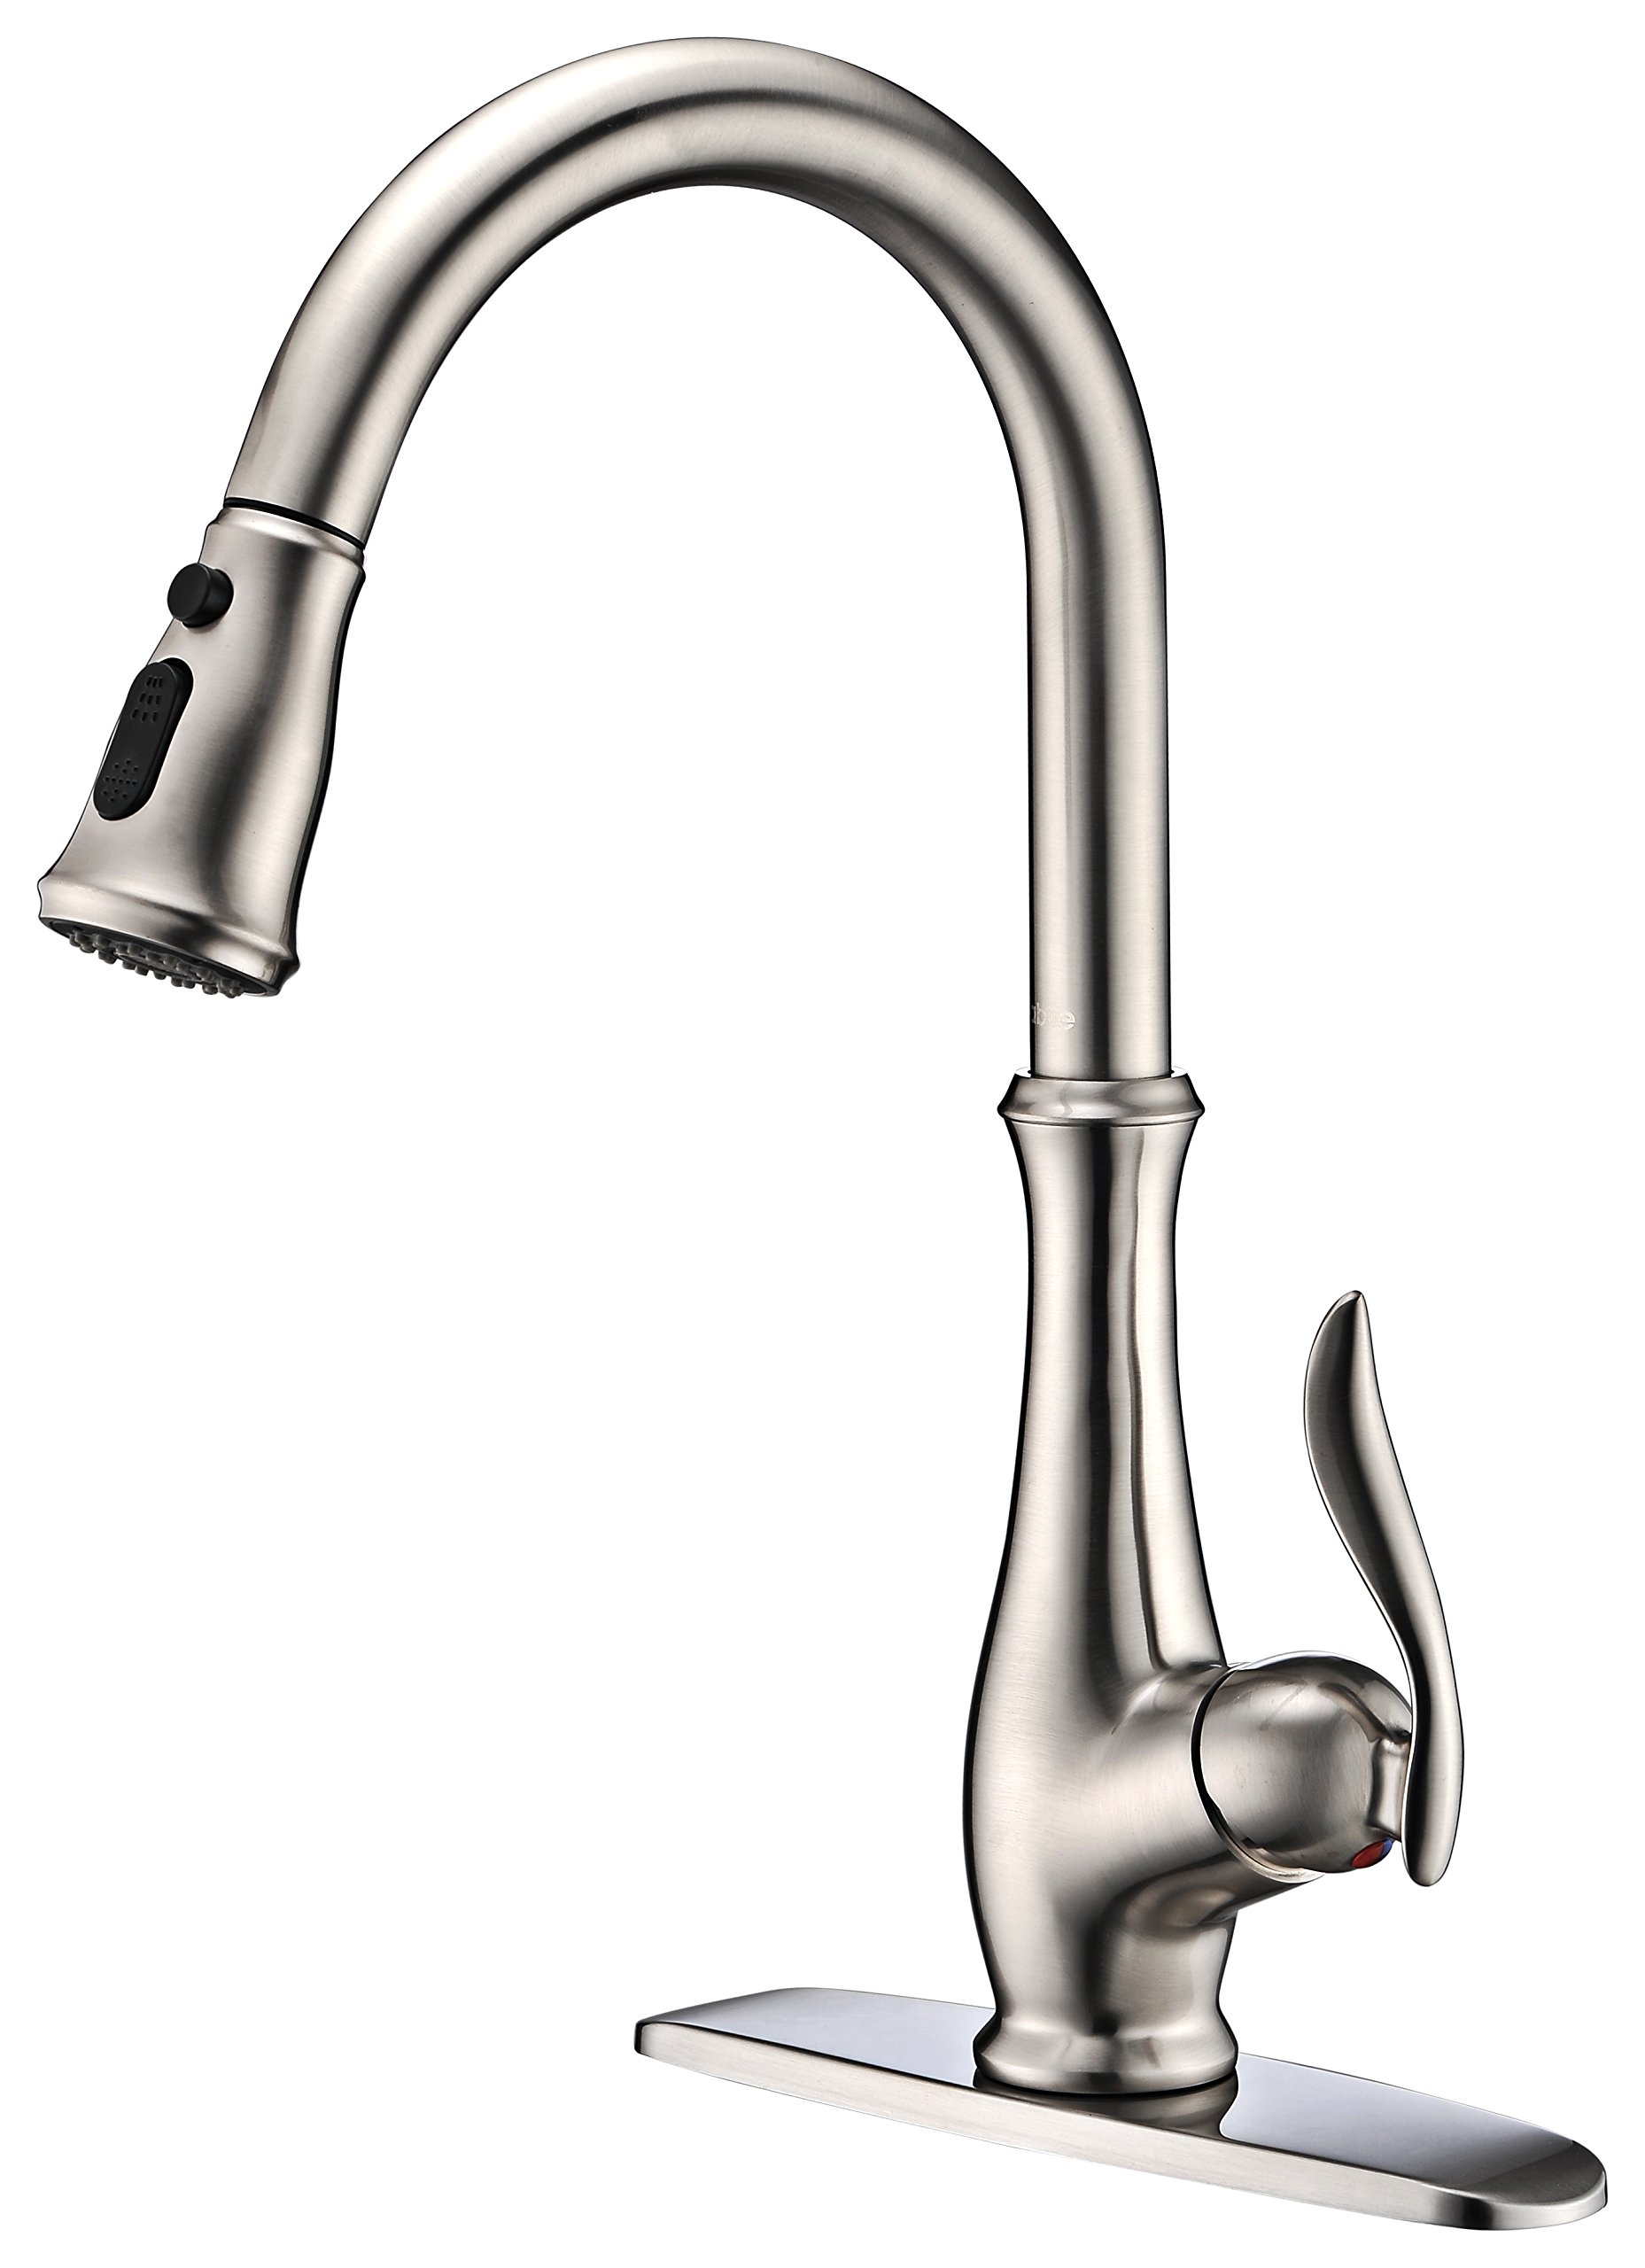 sink faucet inset faucets full sinks sizes kitchen undermountn stainless undermount top double inch rated steel of size phenomenal